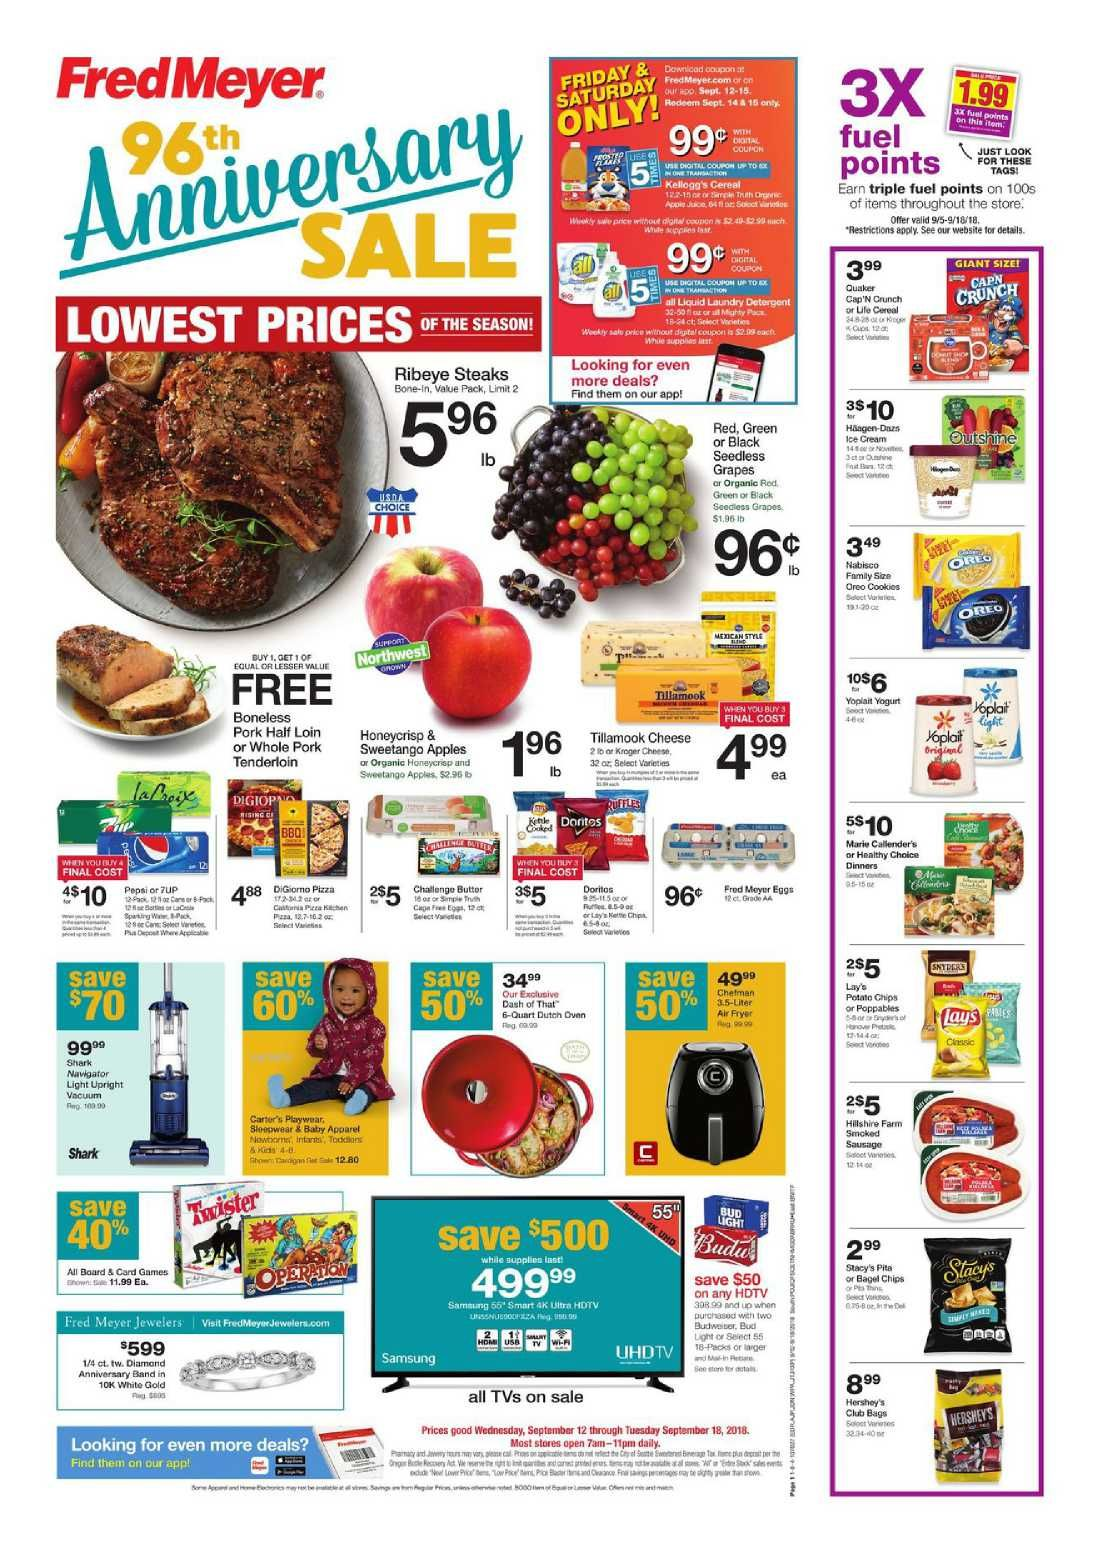 cf4e6603deb9 Check Latest Fred Meyer Weekly ad flyer September 12 – 18